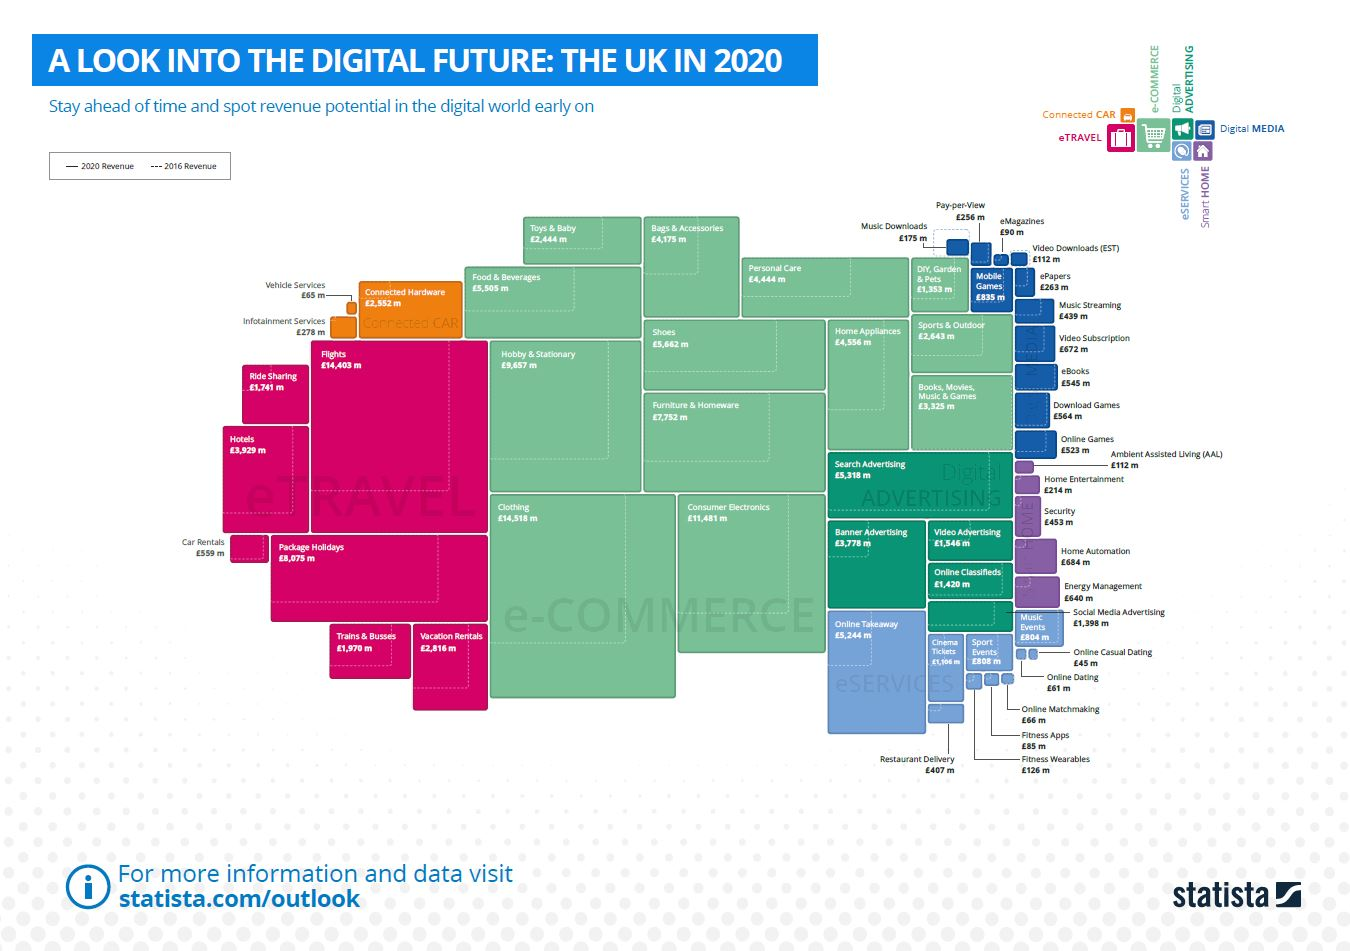 A Look Into The Digital Future: The UK in 2020